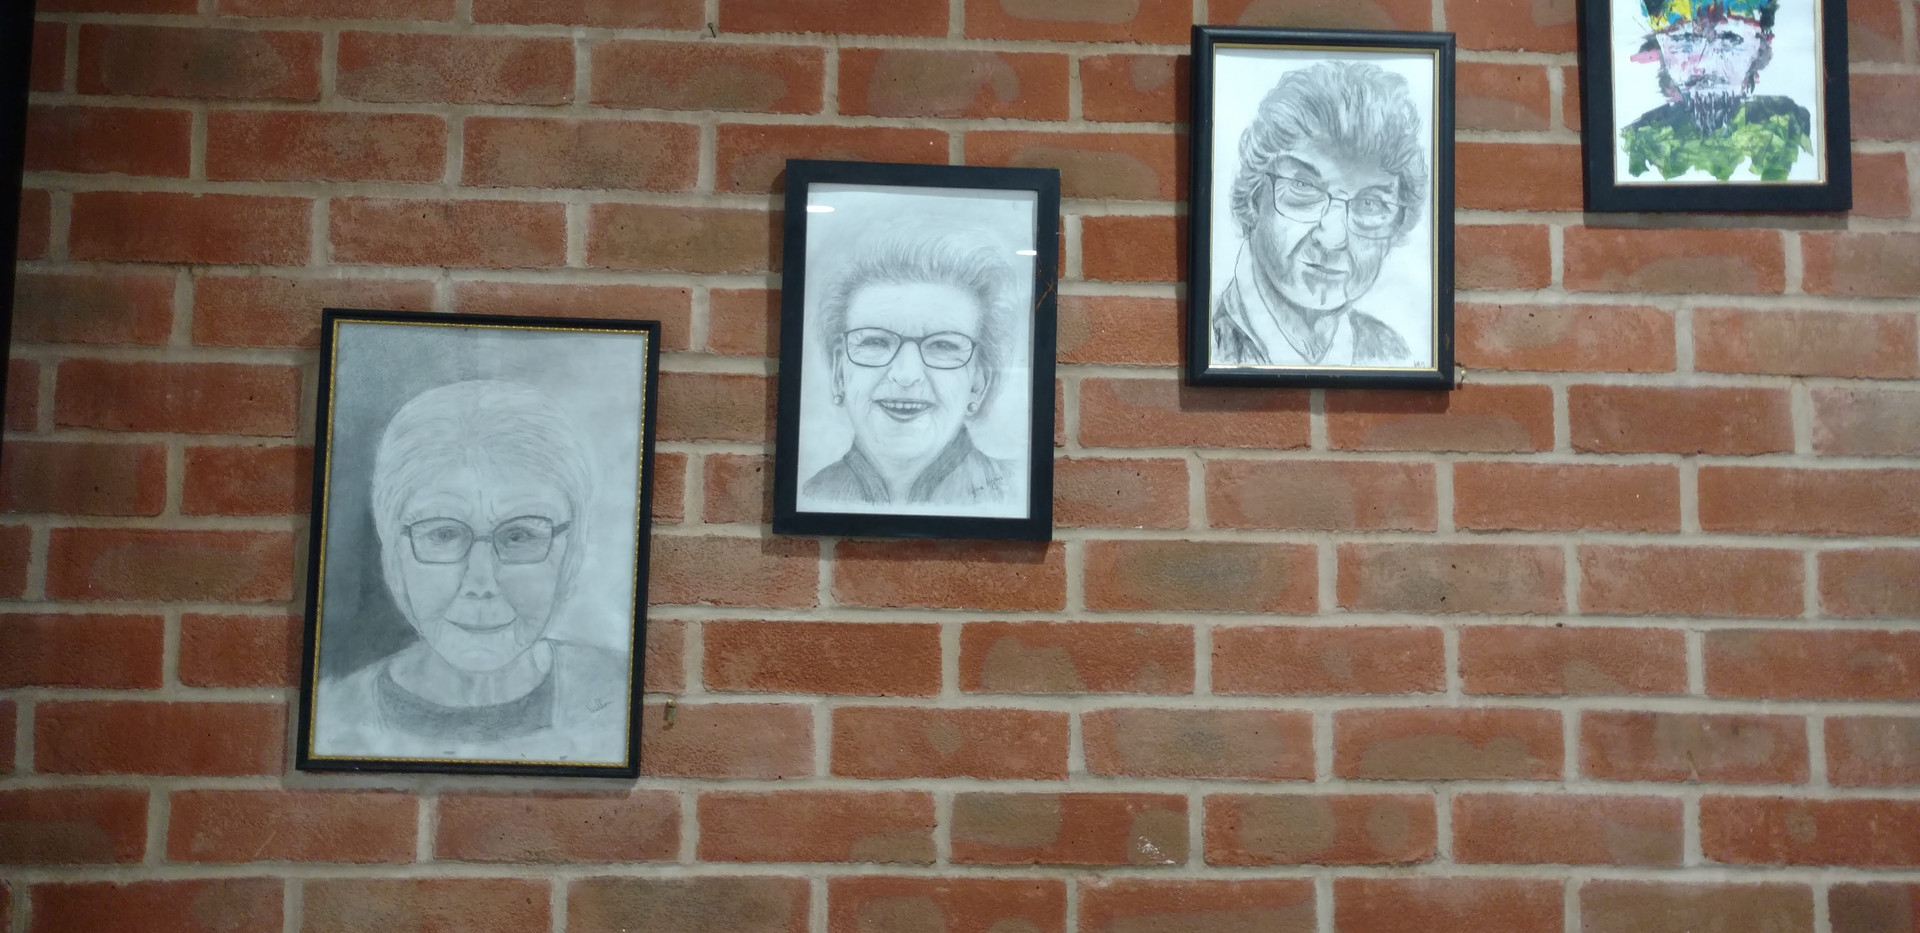 The finished portraits